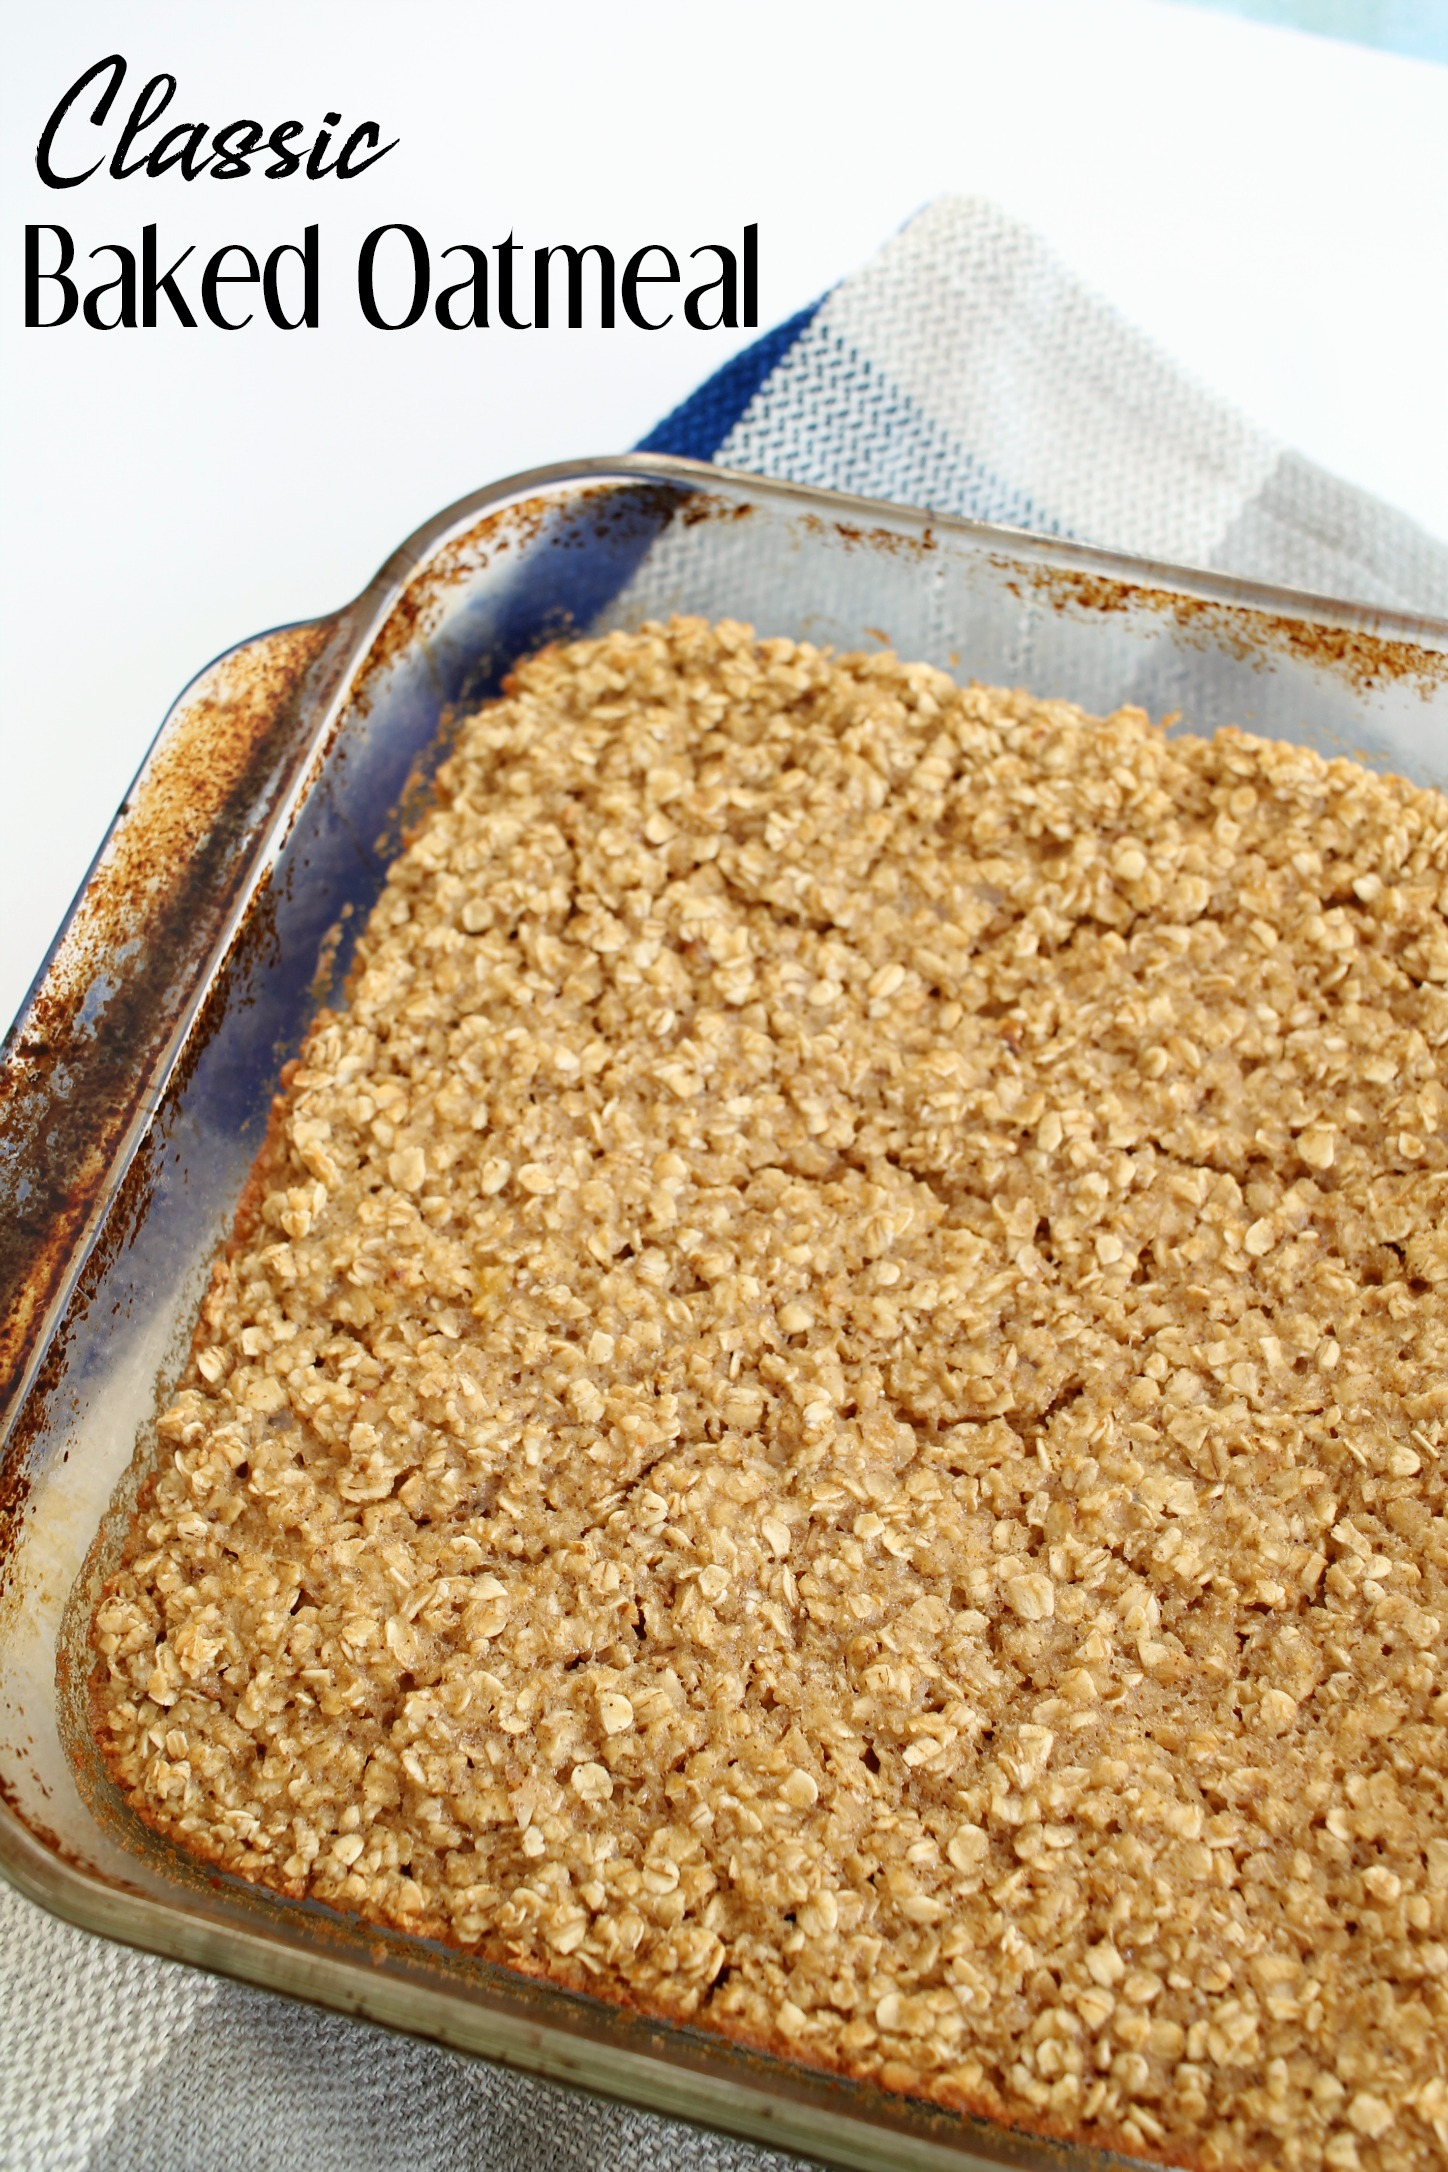 square glass pan filled with baked oatmeal